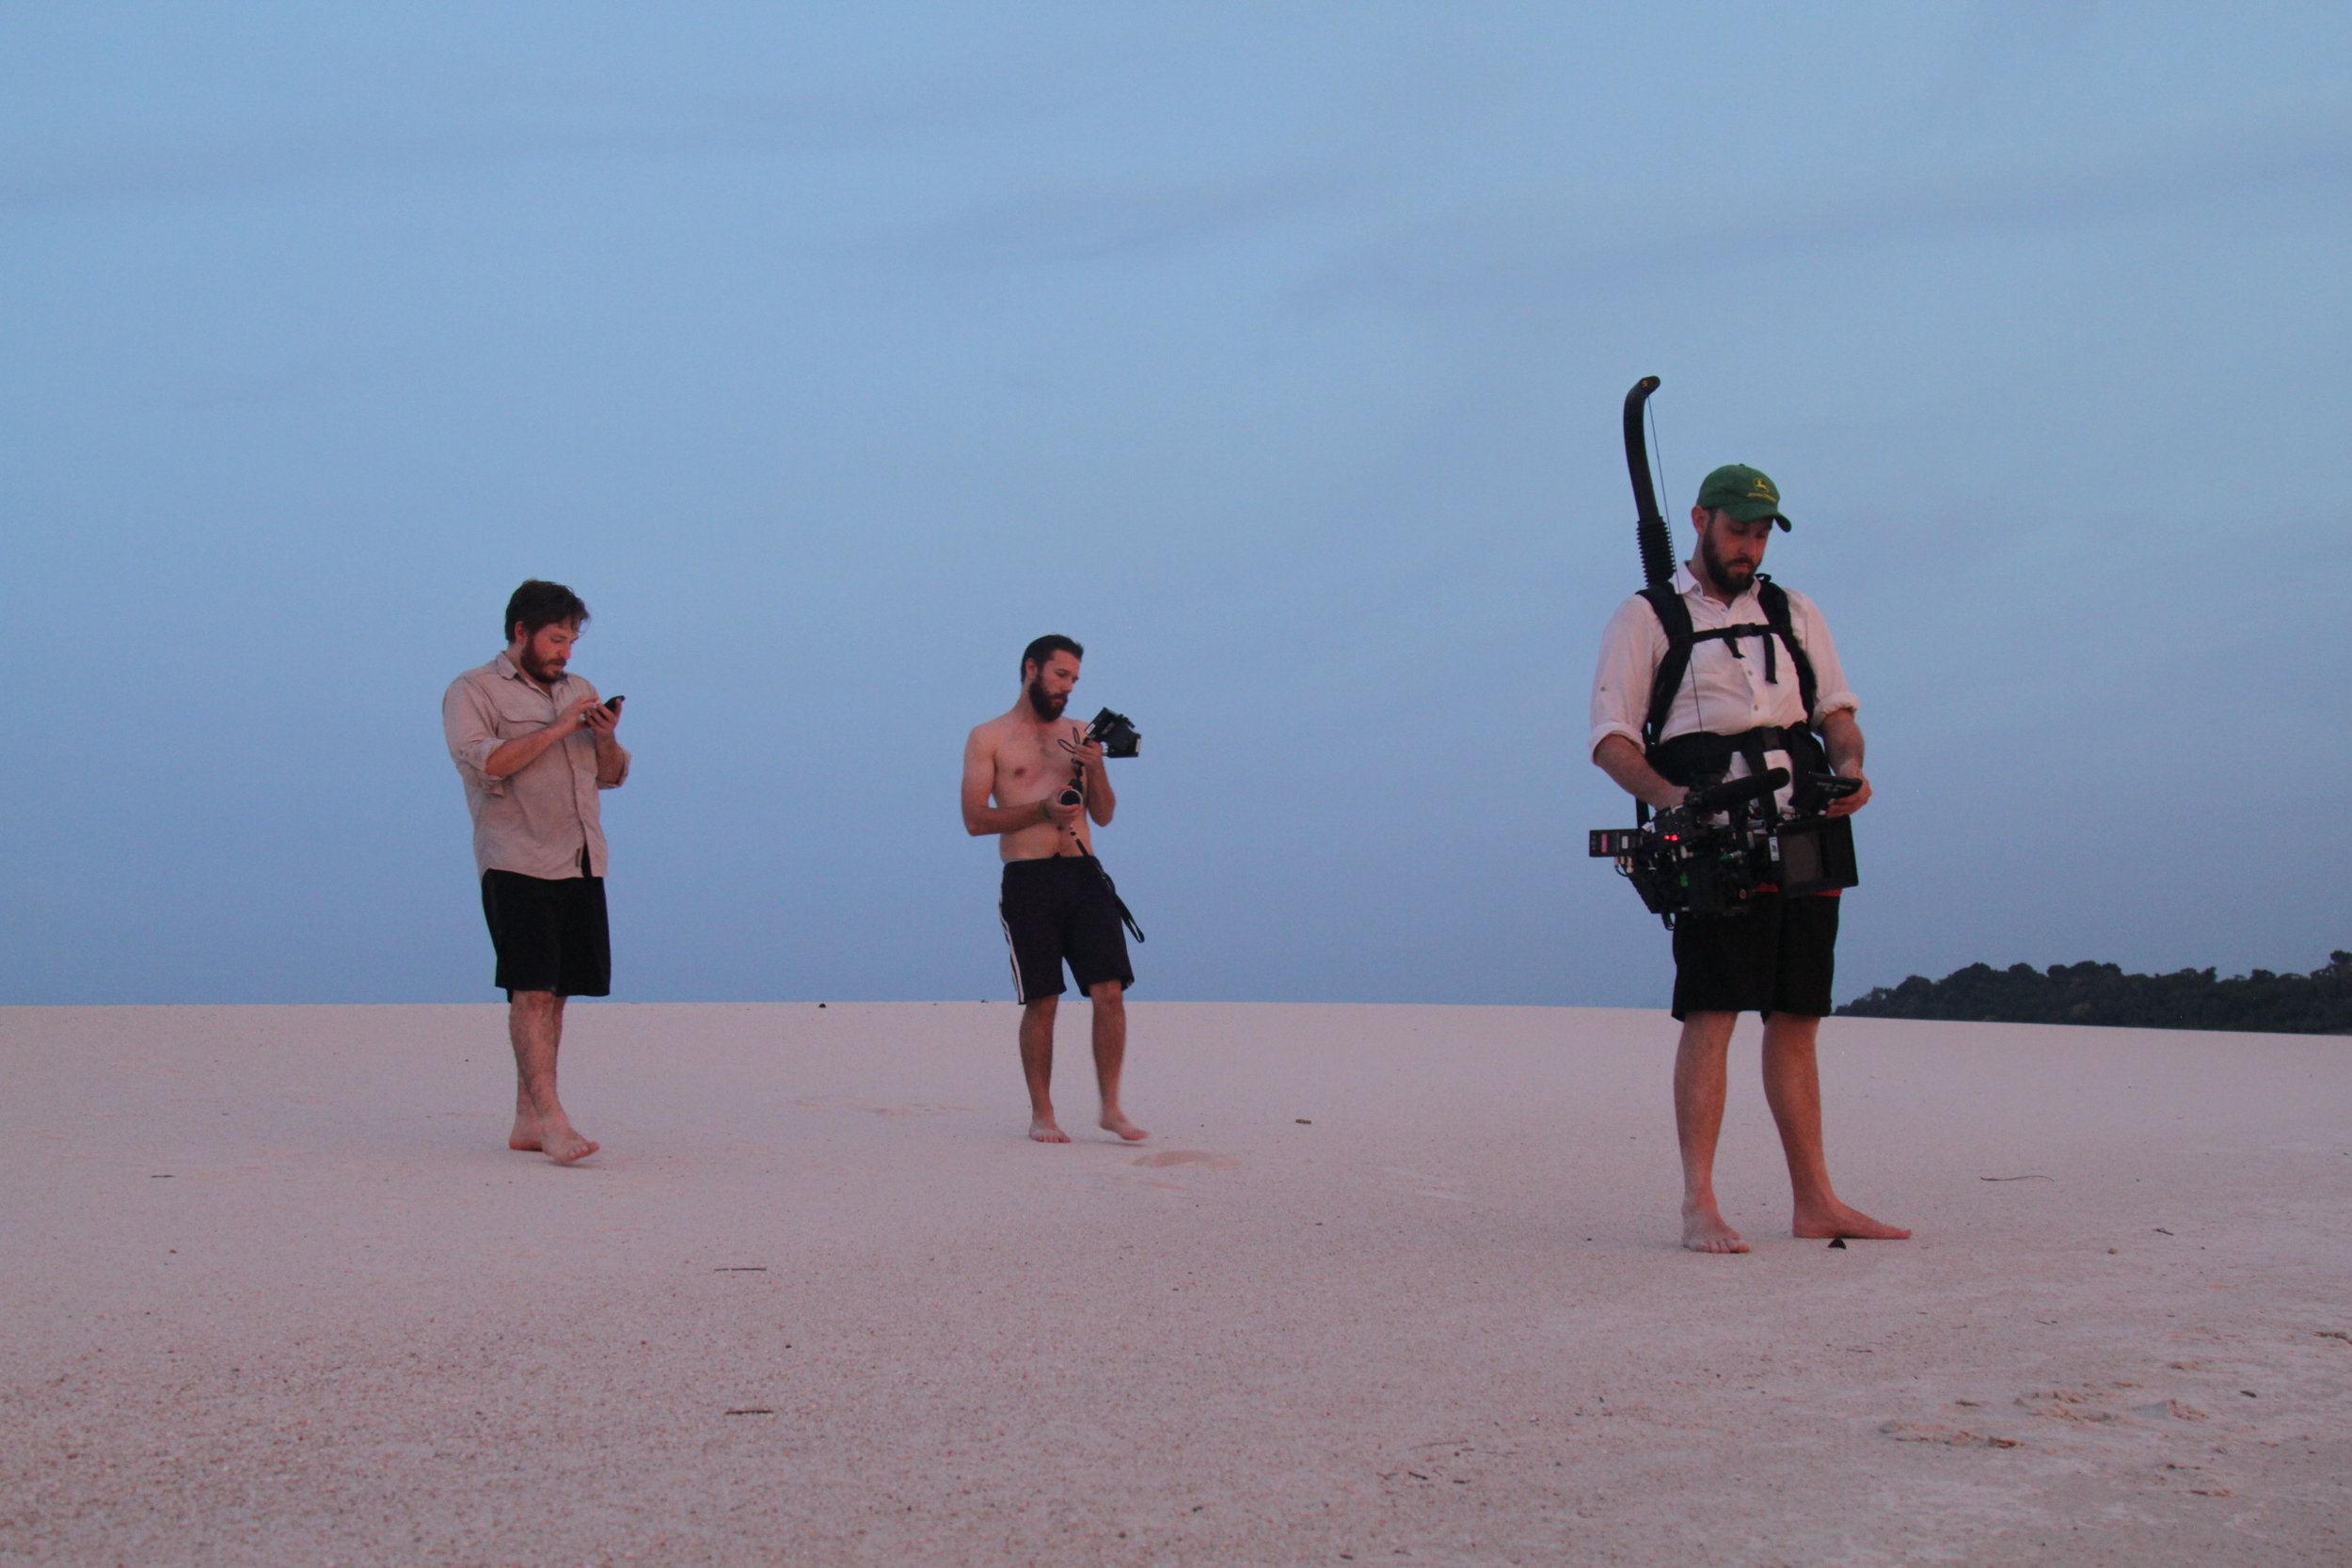 Crew getting images of Atala fishing in São Gabriel Cachoeira